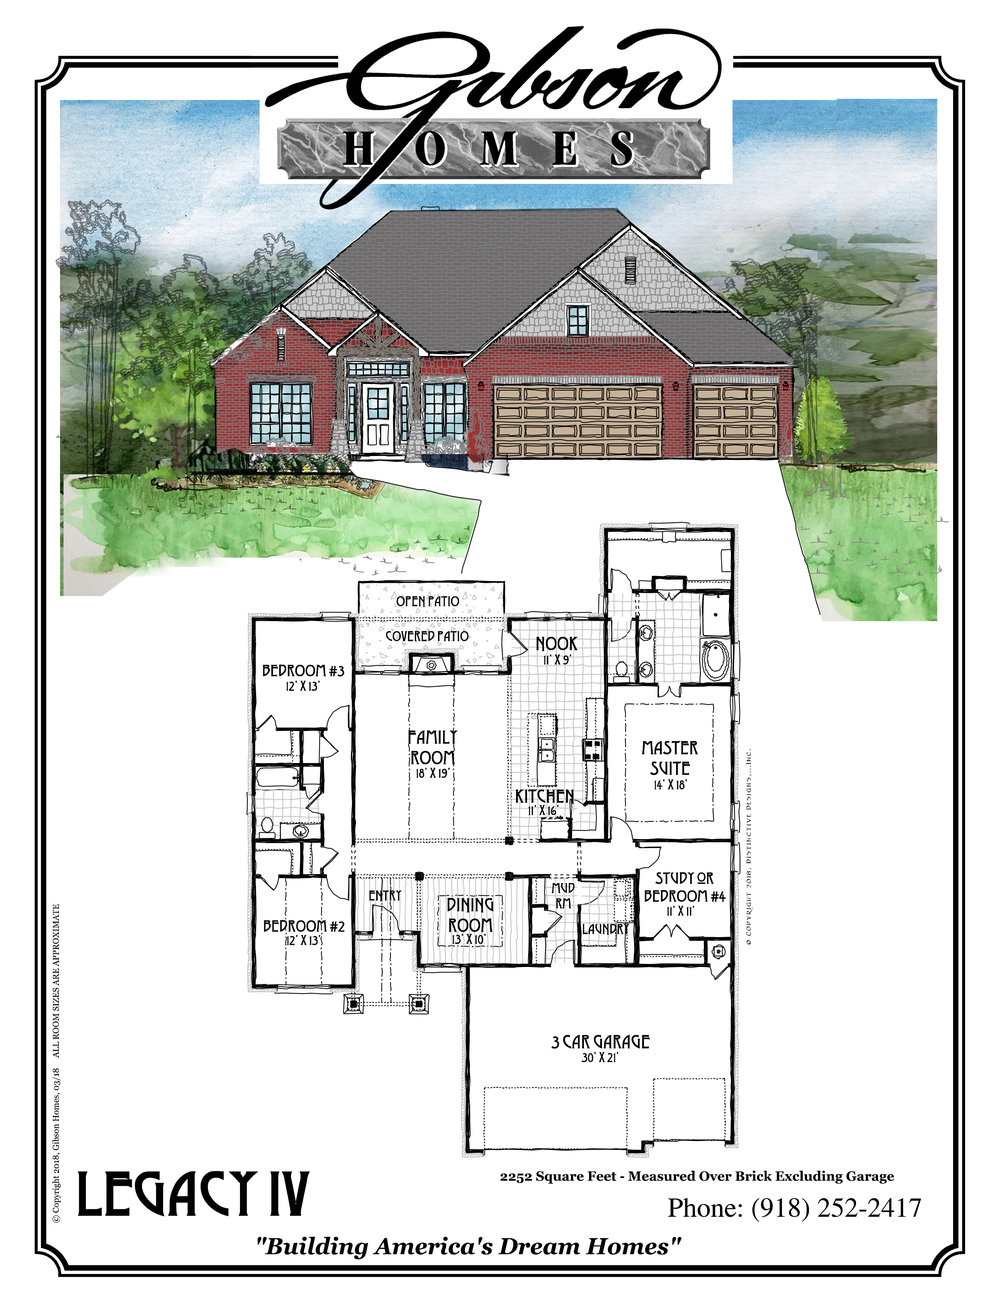 LEGACY IV - 2252 Sq. Feet4 bedrooms2 bathroomsFormal Dining3 car garageBase Price $227,000